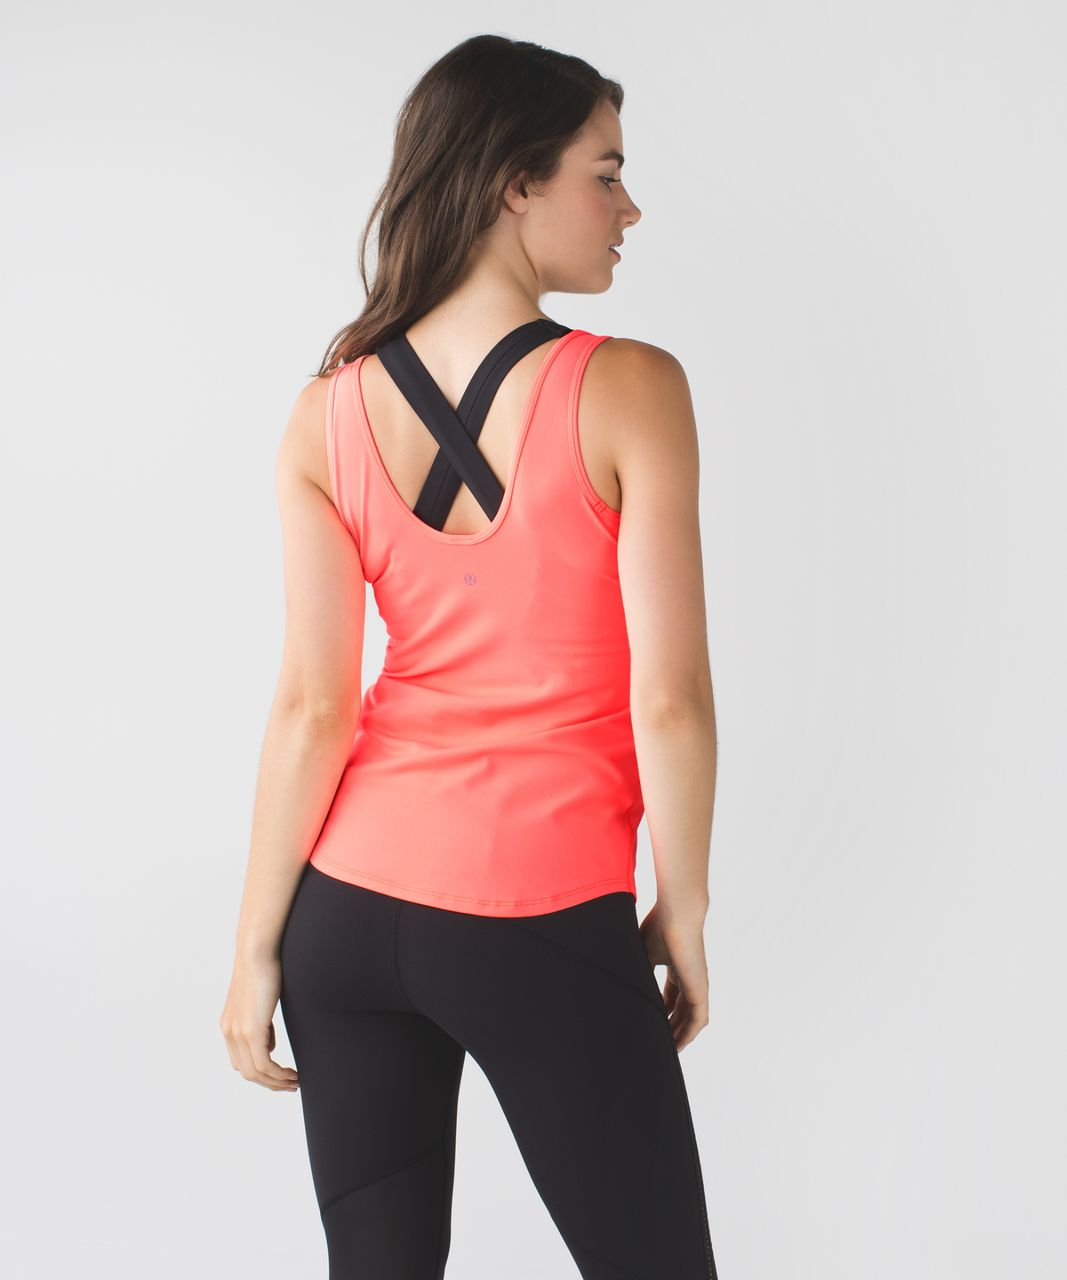 Lululemon Straight Up Tank - Very Light Flare